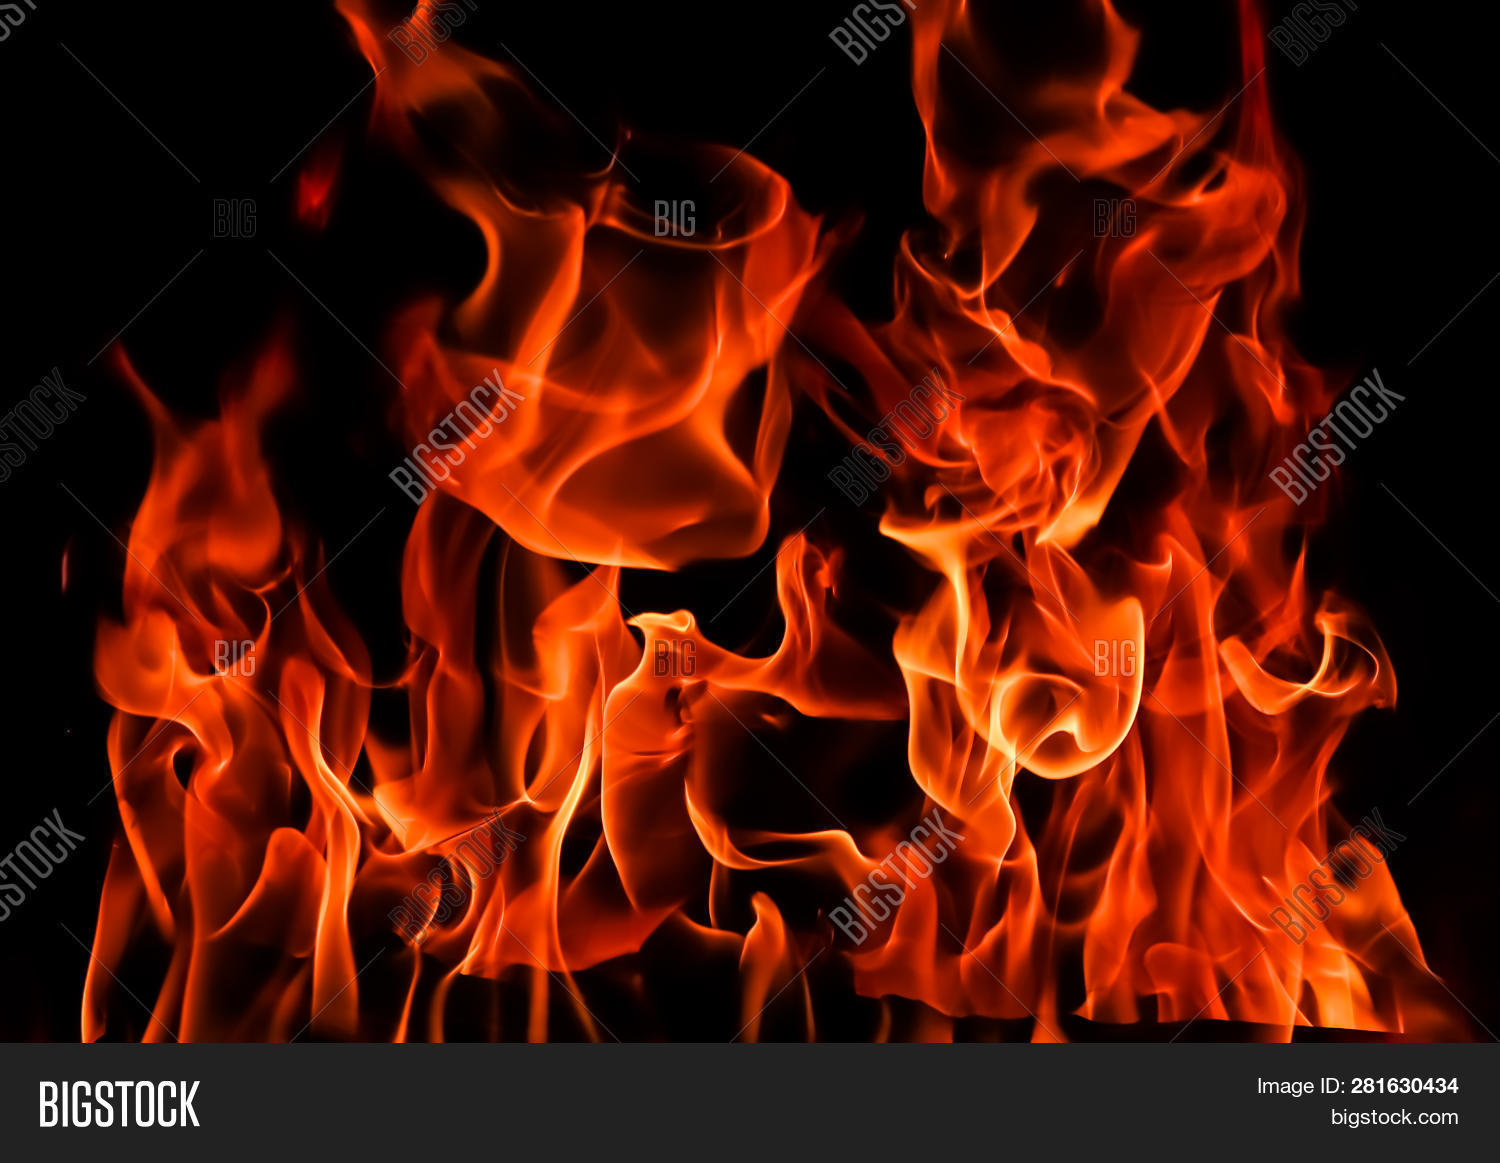 Flames Fire On Black Image Photo Free Trial Bigstock